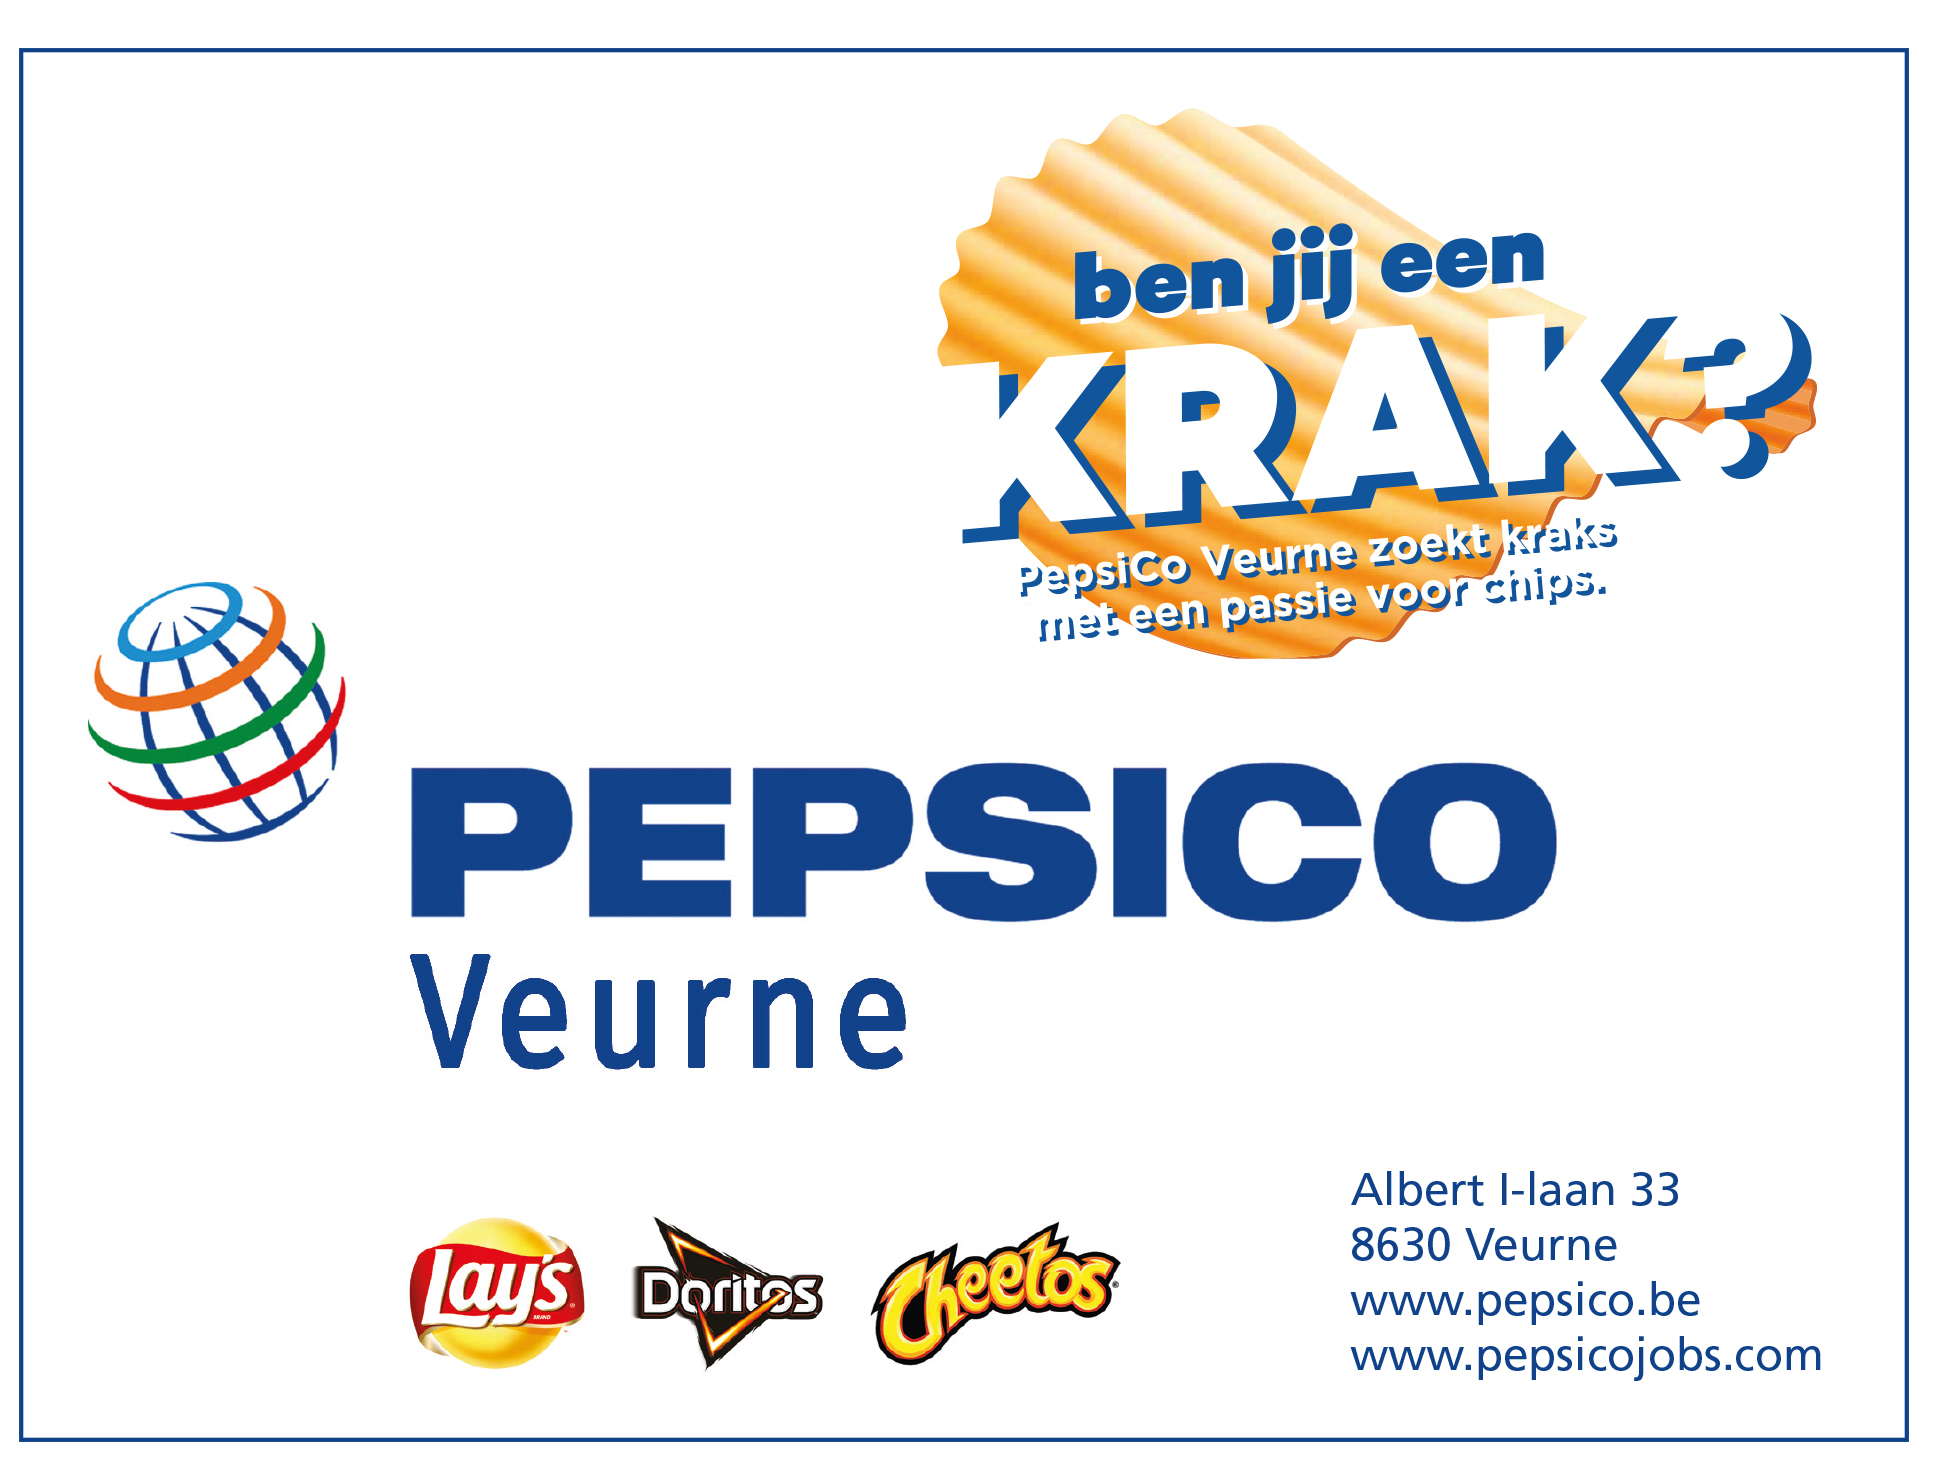 http://www.pepsico.be/